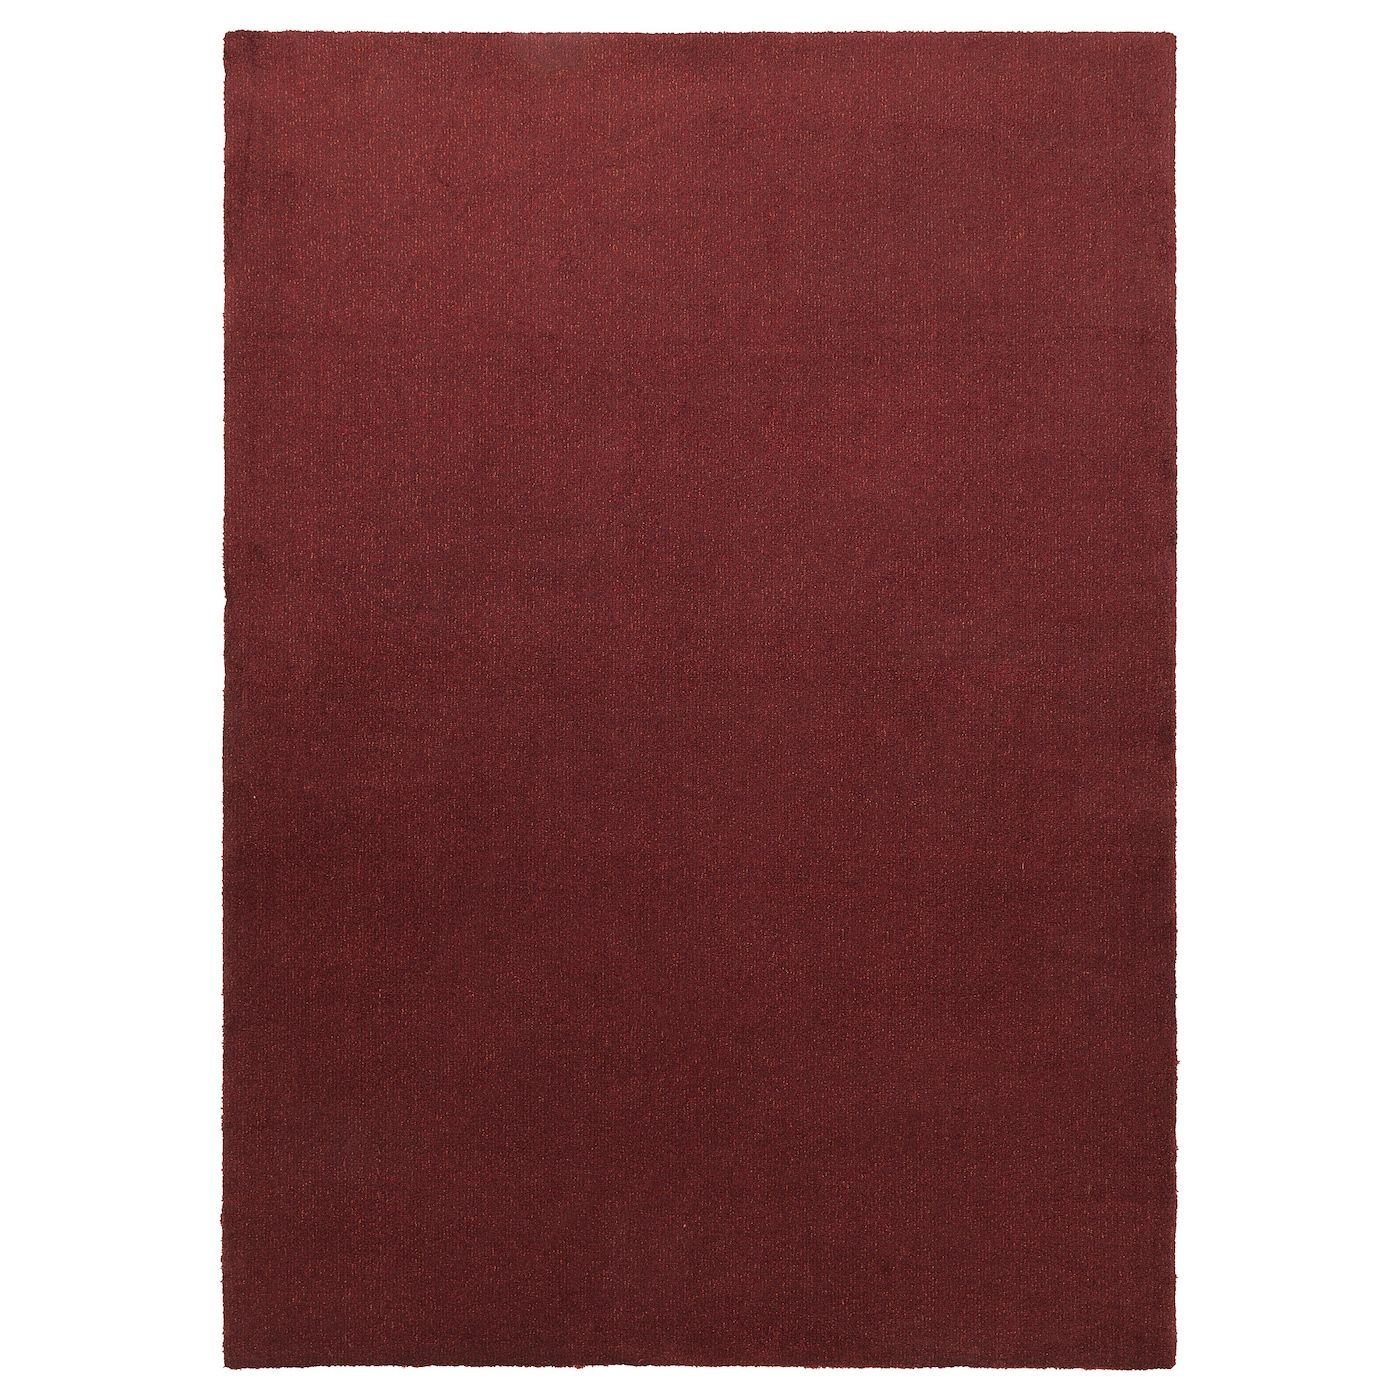 Tyvelse Teppich Kurzflor Dunkelrot 170x240 Cm Ikea Österreich In 2021 How To Clean Carpet Rugs Big Rugs